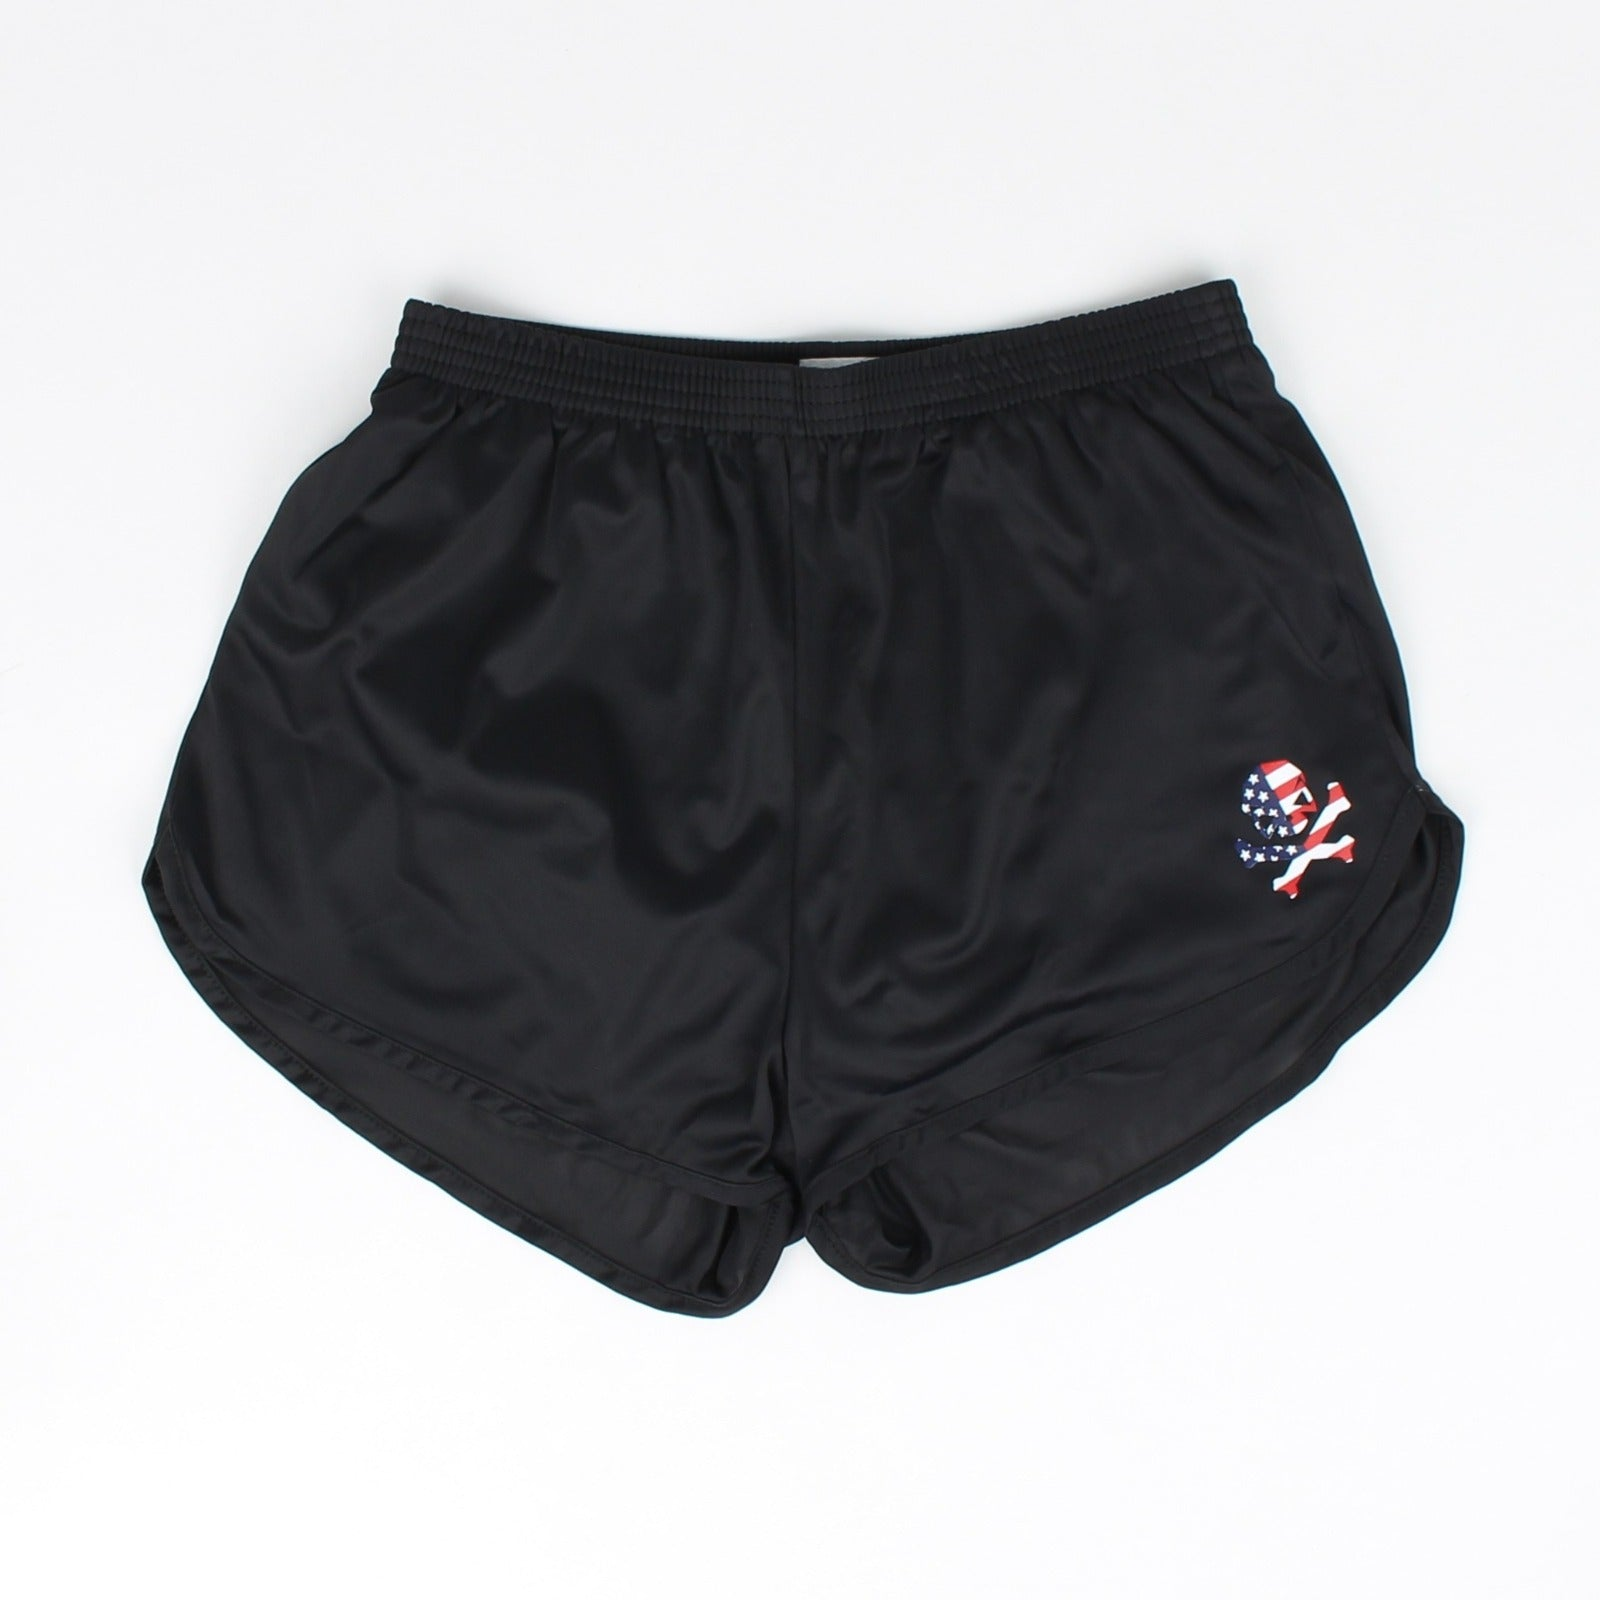 Silkies - Black with Red, White & Blue Logo - Pipe Hitters Union